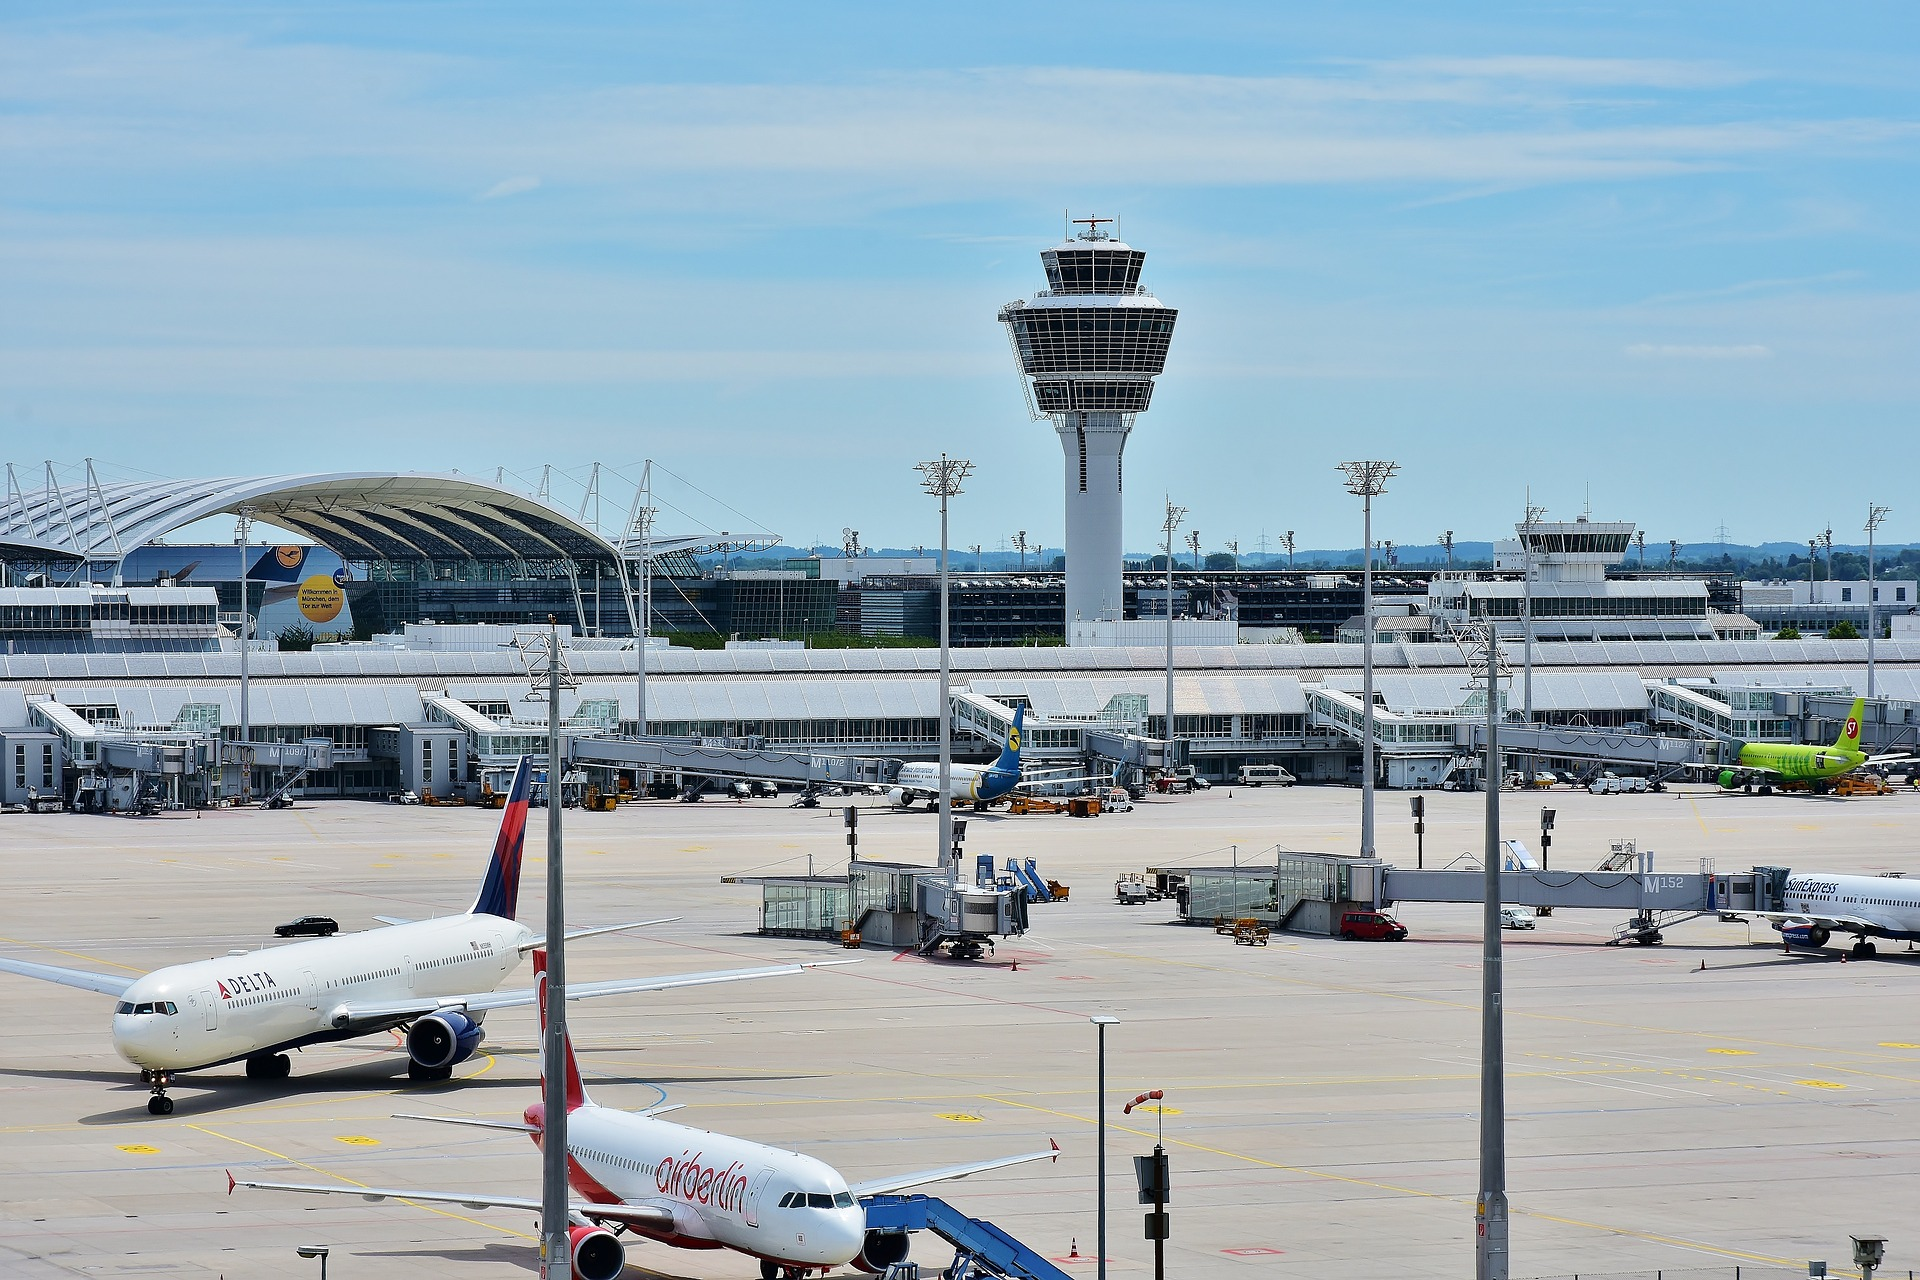 Munich Airport, Munich, Germany